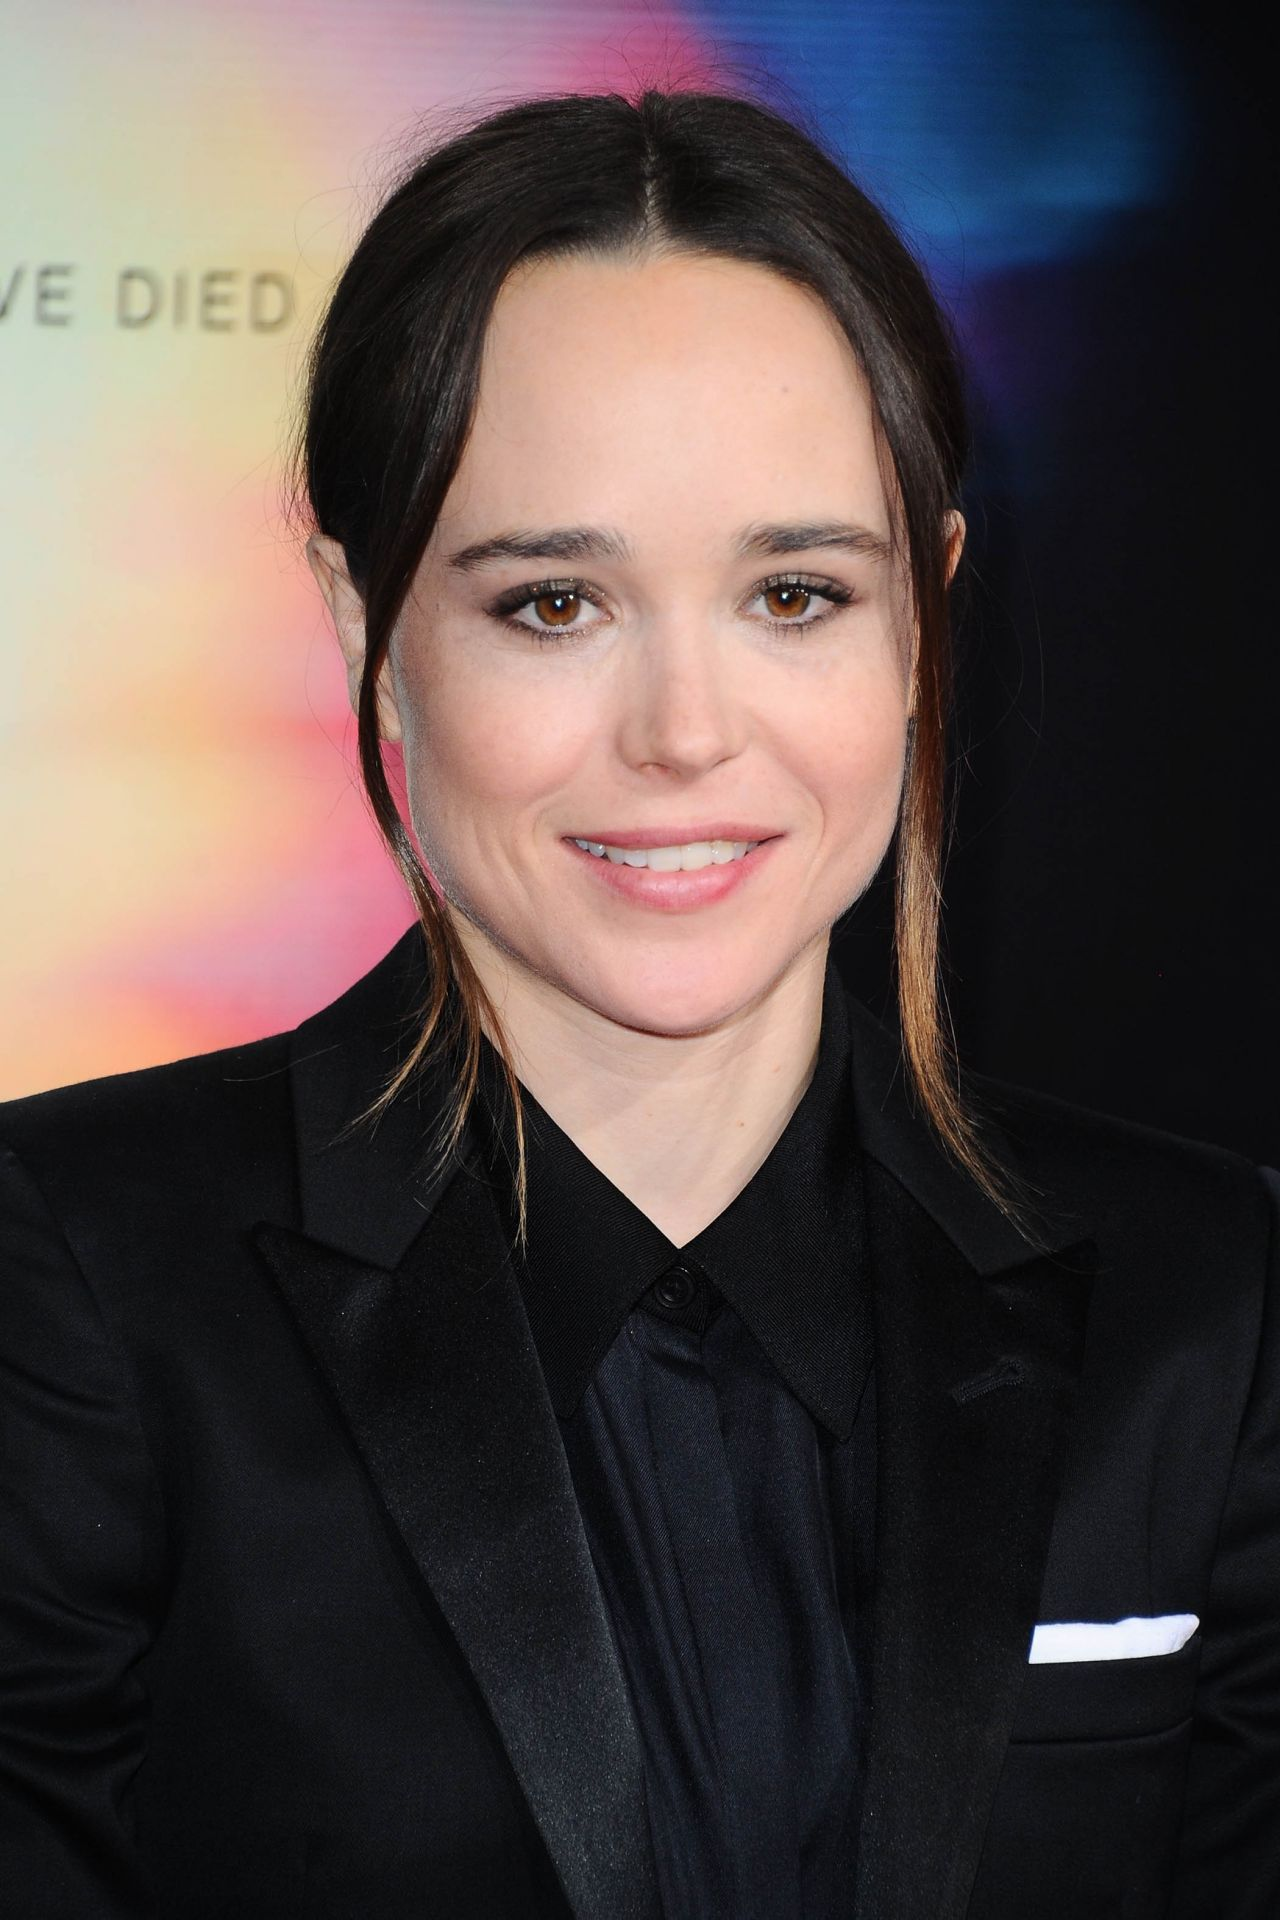 Ellen Page Flatliners Premiere In Los Angeles 09 27 2017